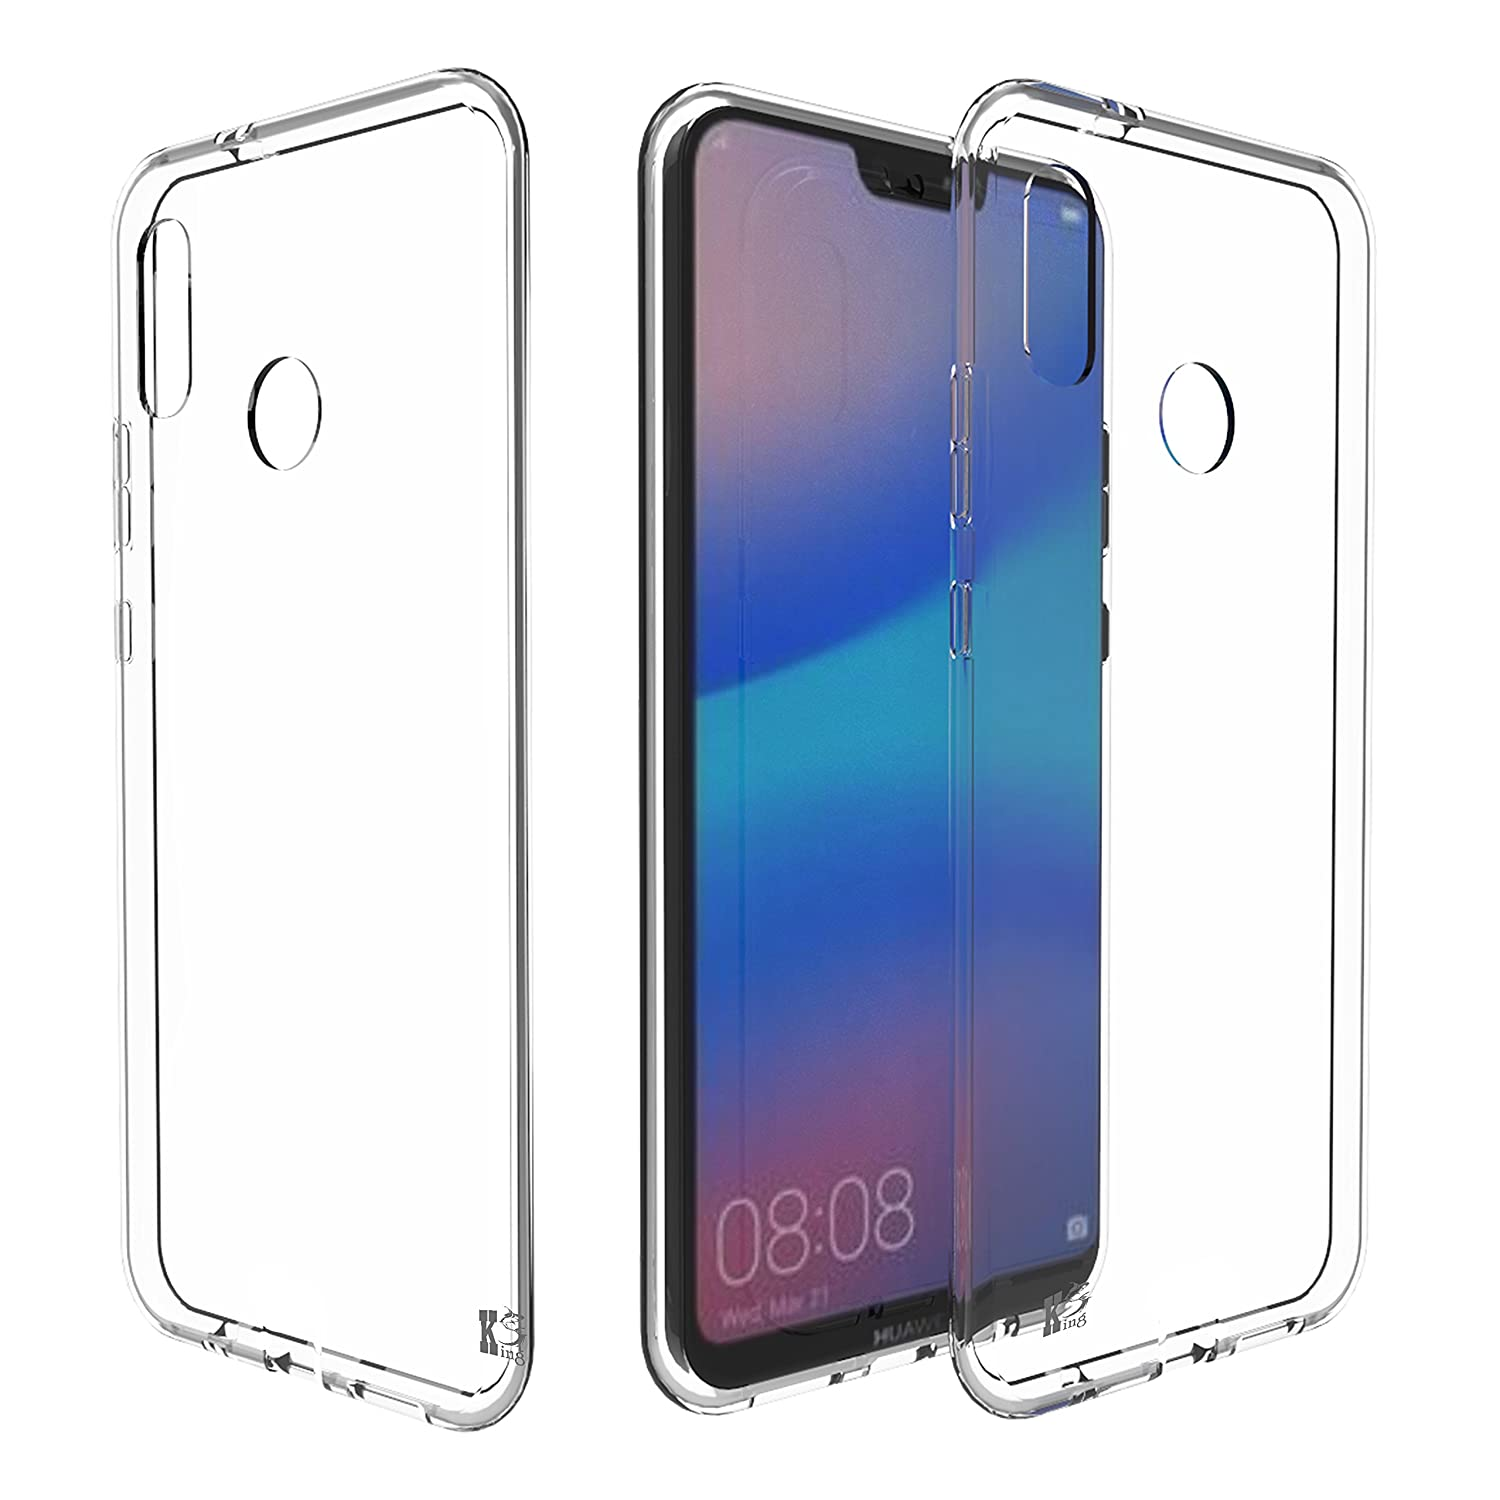 Huawei P20 Lite Cover, Kingshark ultra case cover [thin thin] flexible rubber TPU gel soft silicone protective skin for Huawei P20 Lite 2018 Transparent